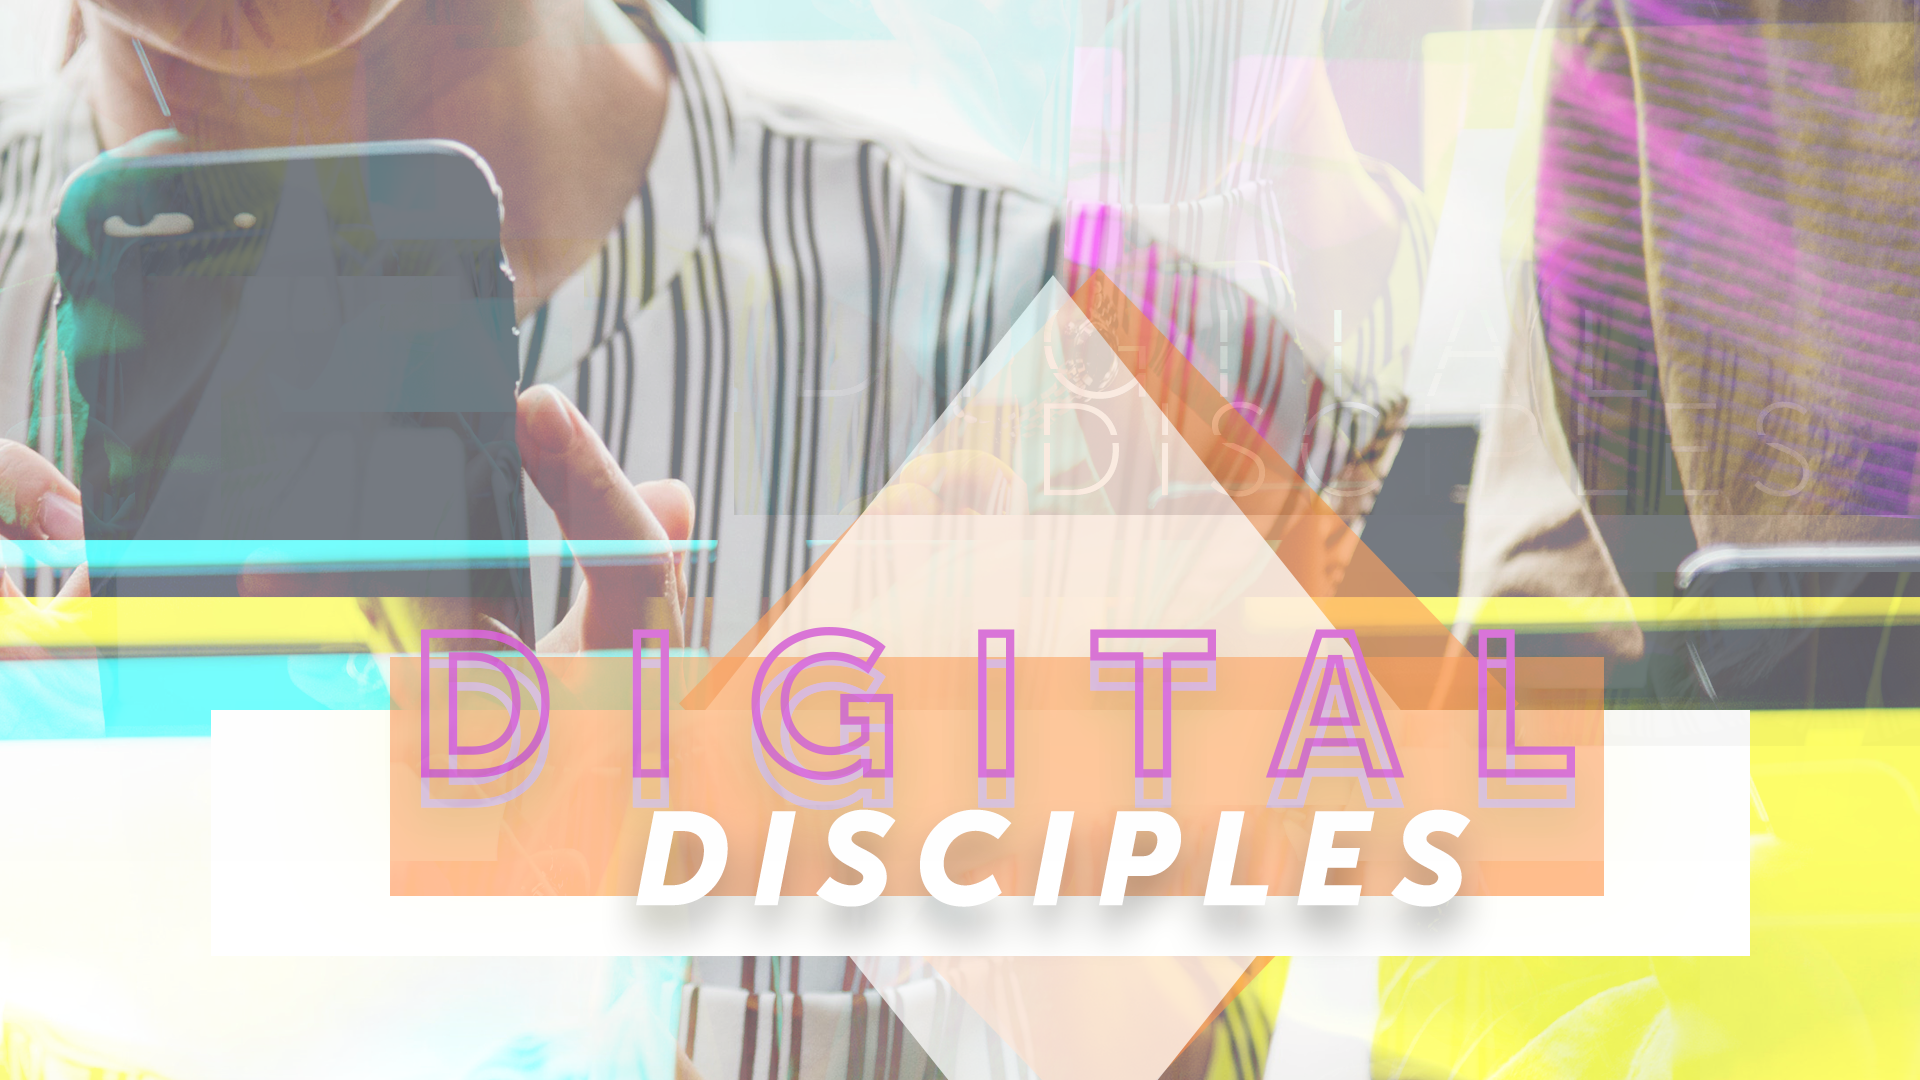 digital disciples.png